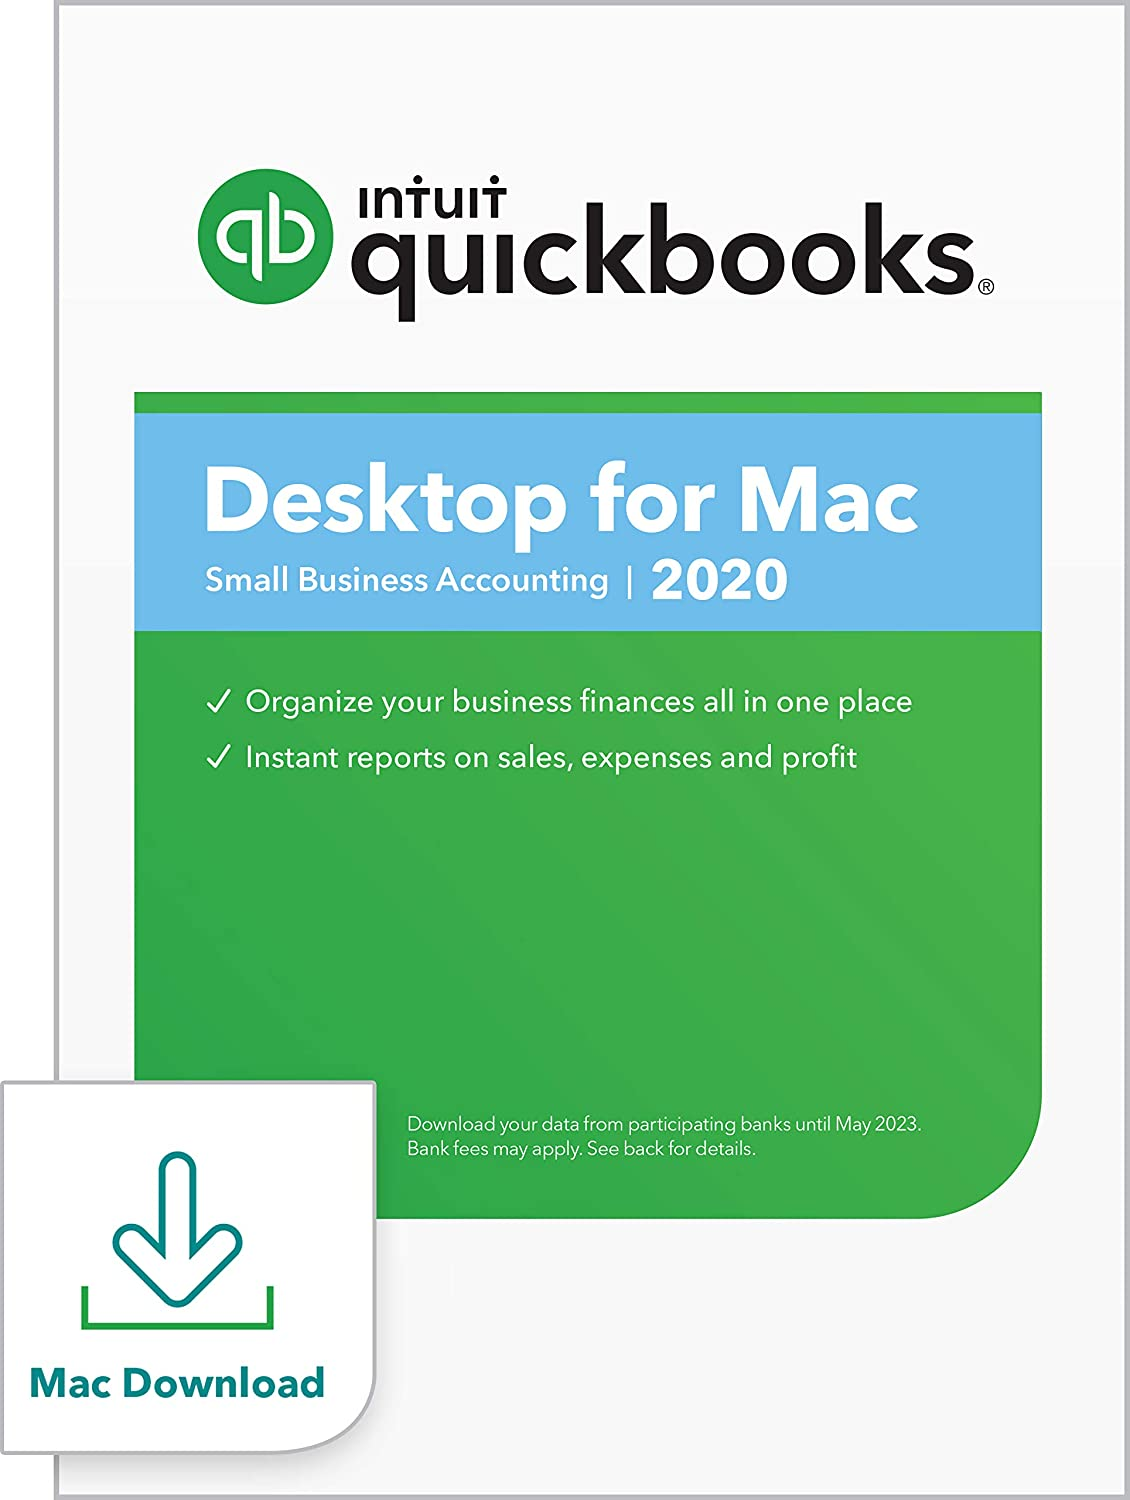 Best High Yield Savings Accounts 2020.Quickbooks Desktop For Mac 2020 Accounting Software For Small Business With Amazon Exclusive Shortcut Guide Mac Download